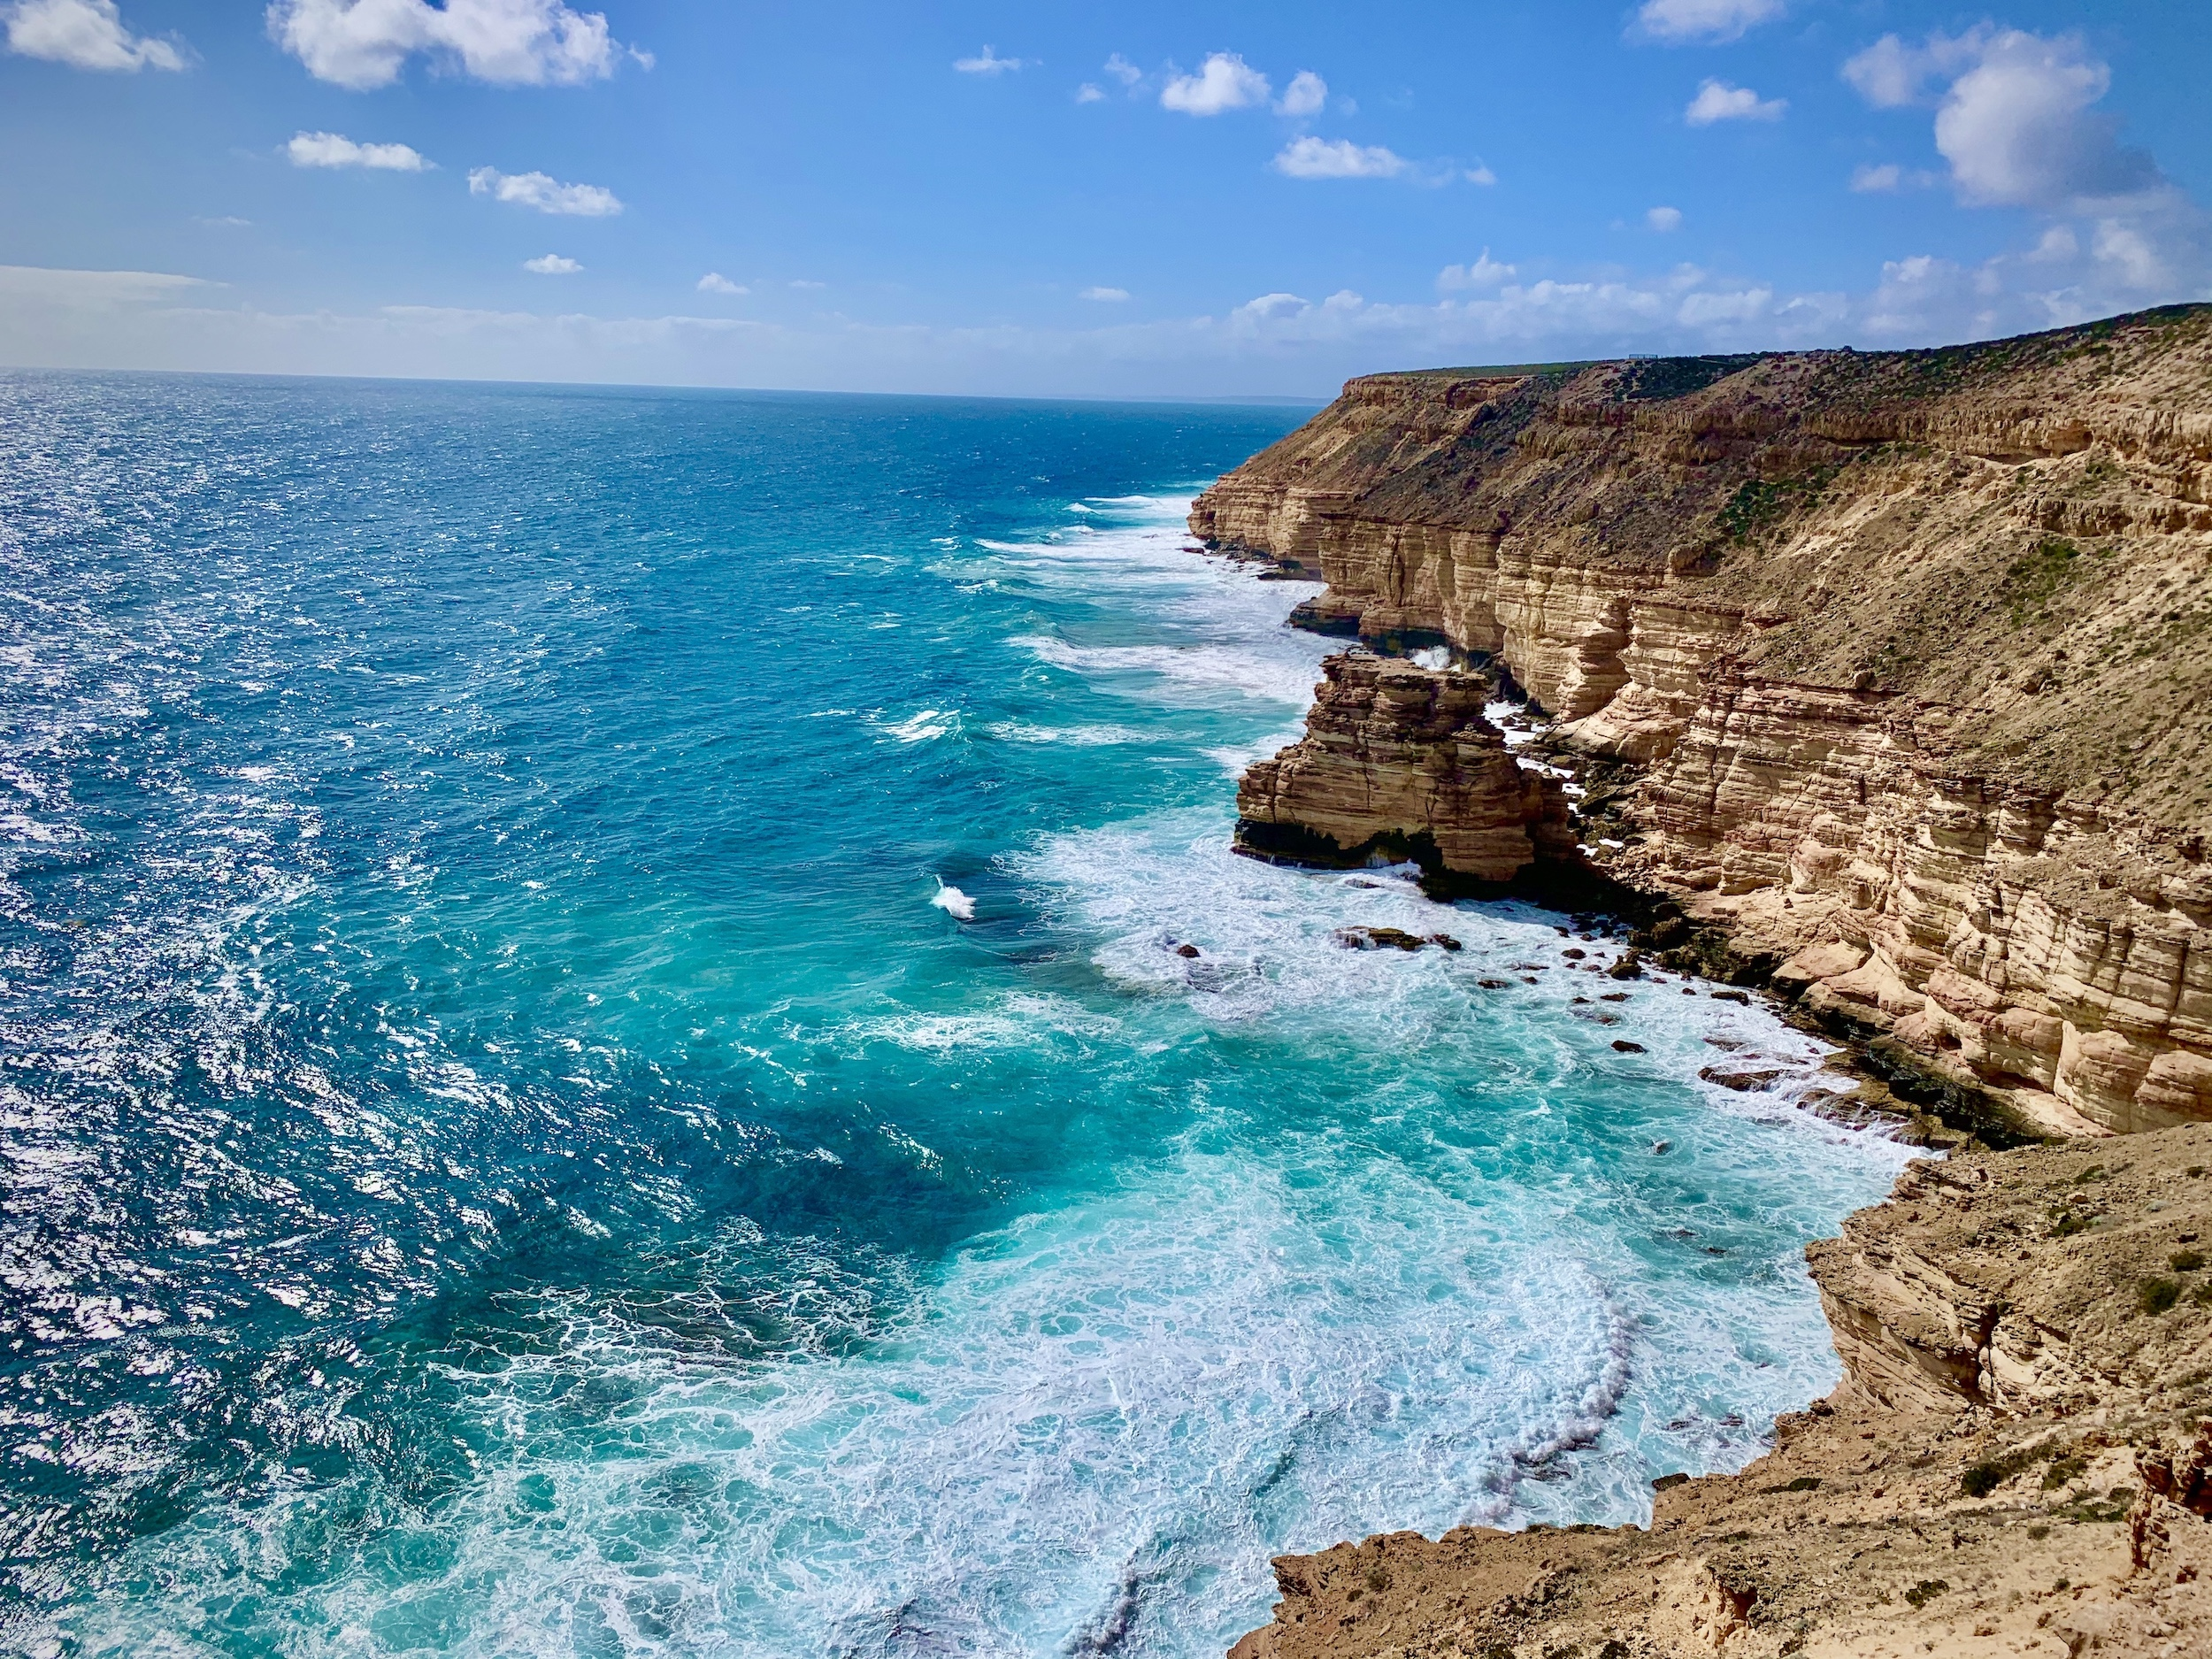 Waves breaking over Kalbarri coastal cliffs